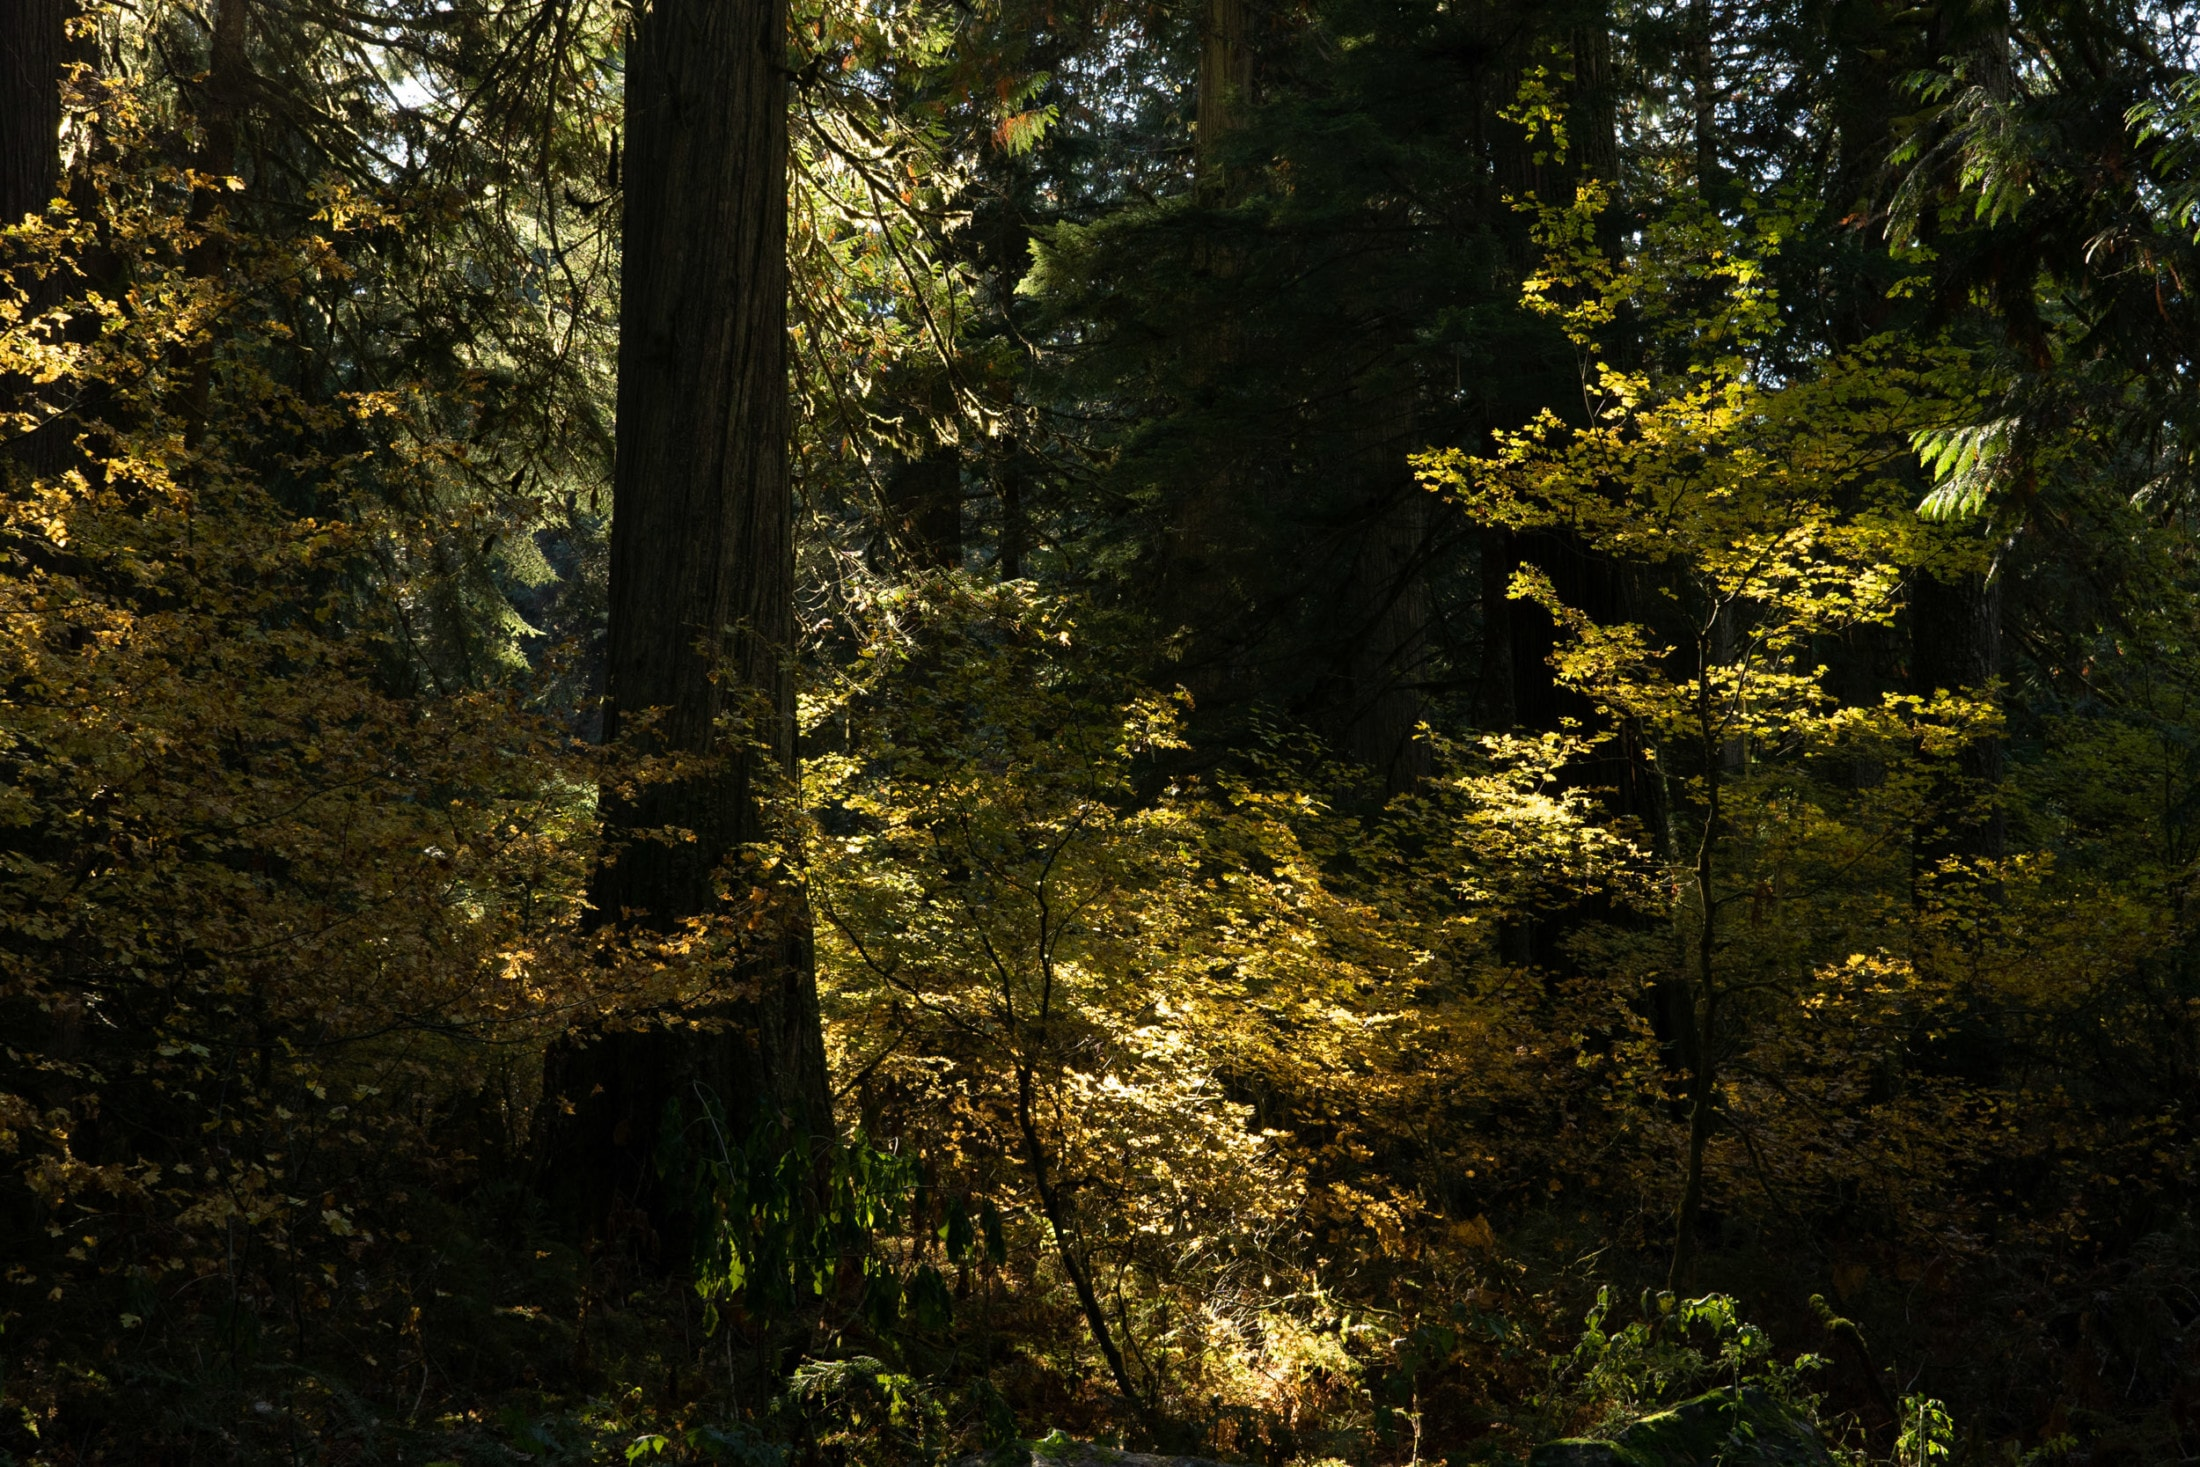 Old growth forest in the Skagit River area